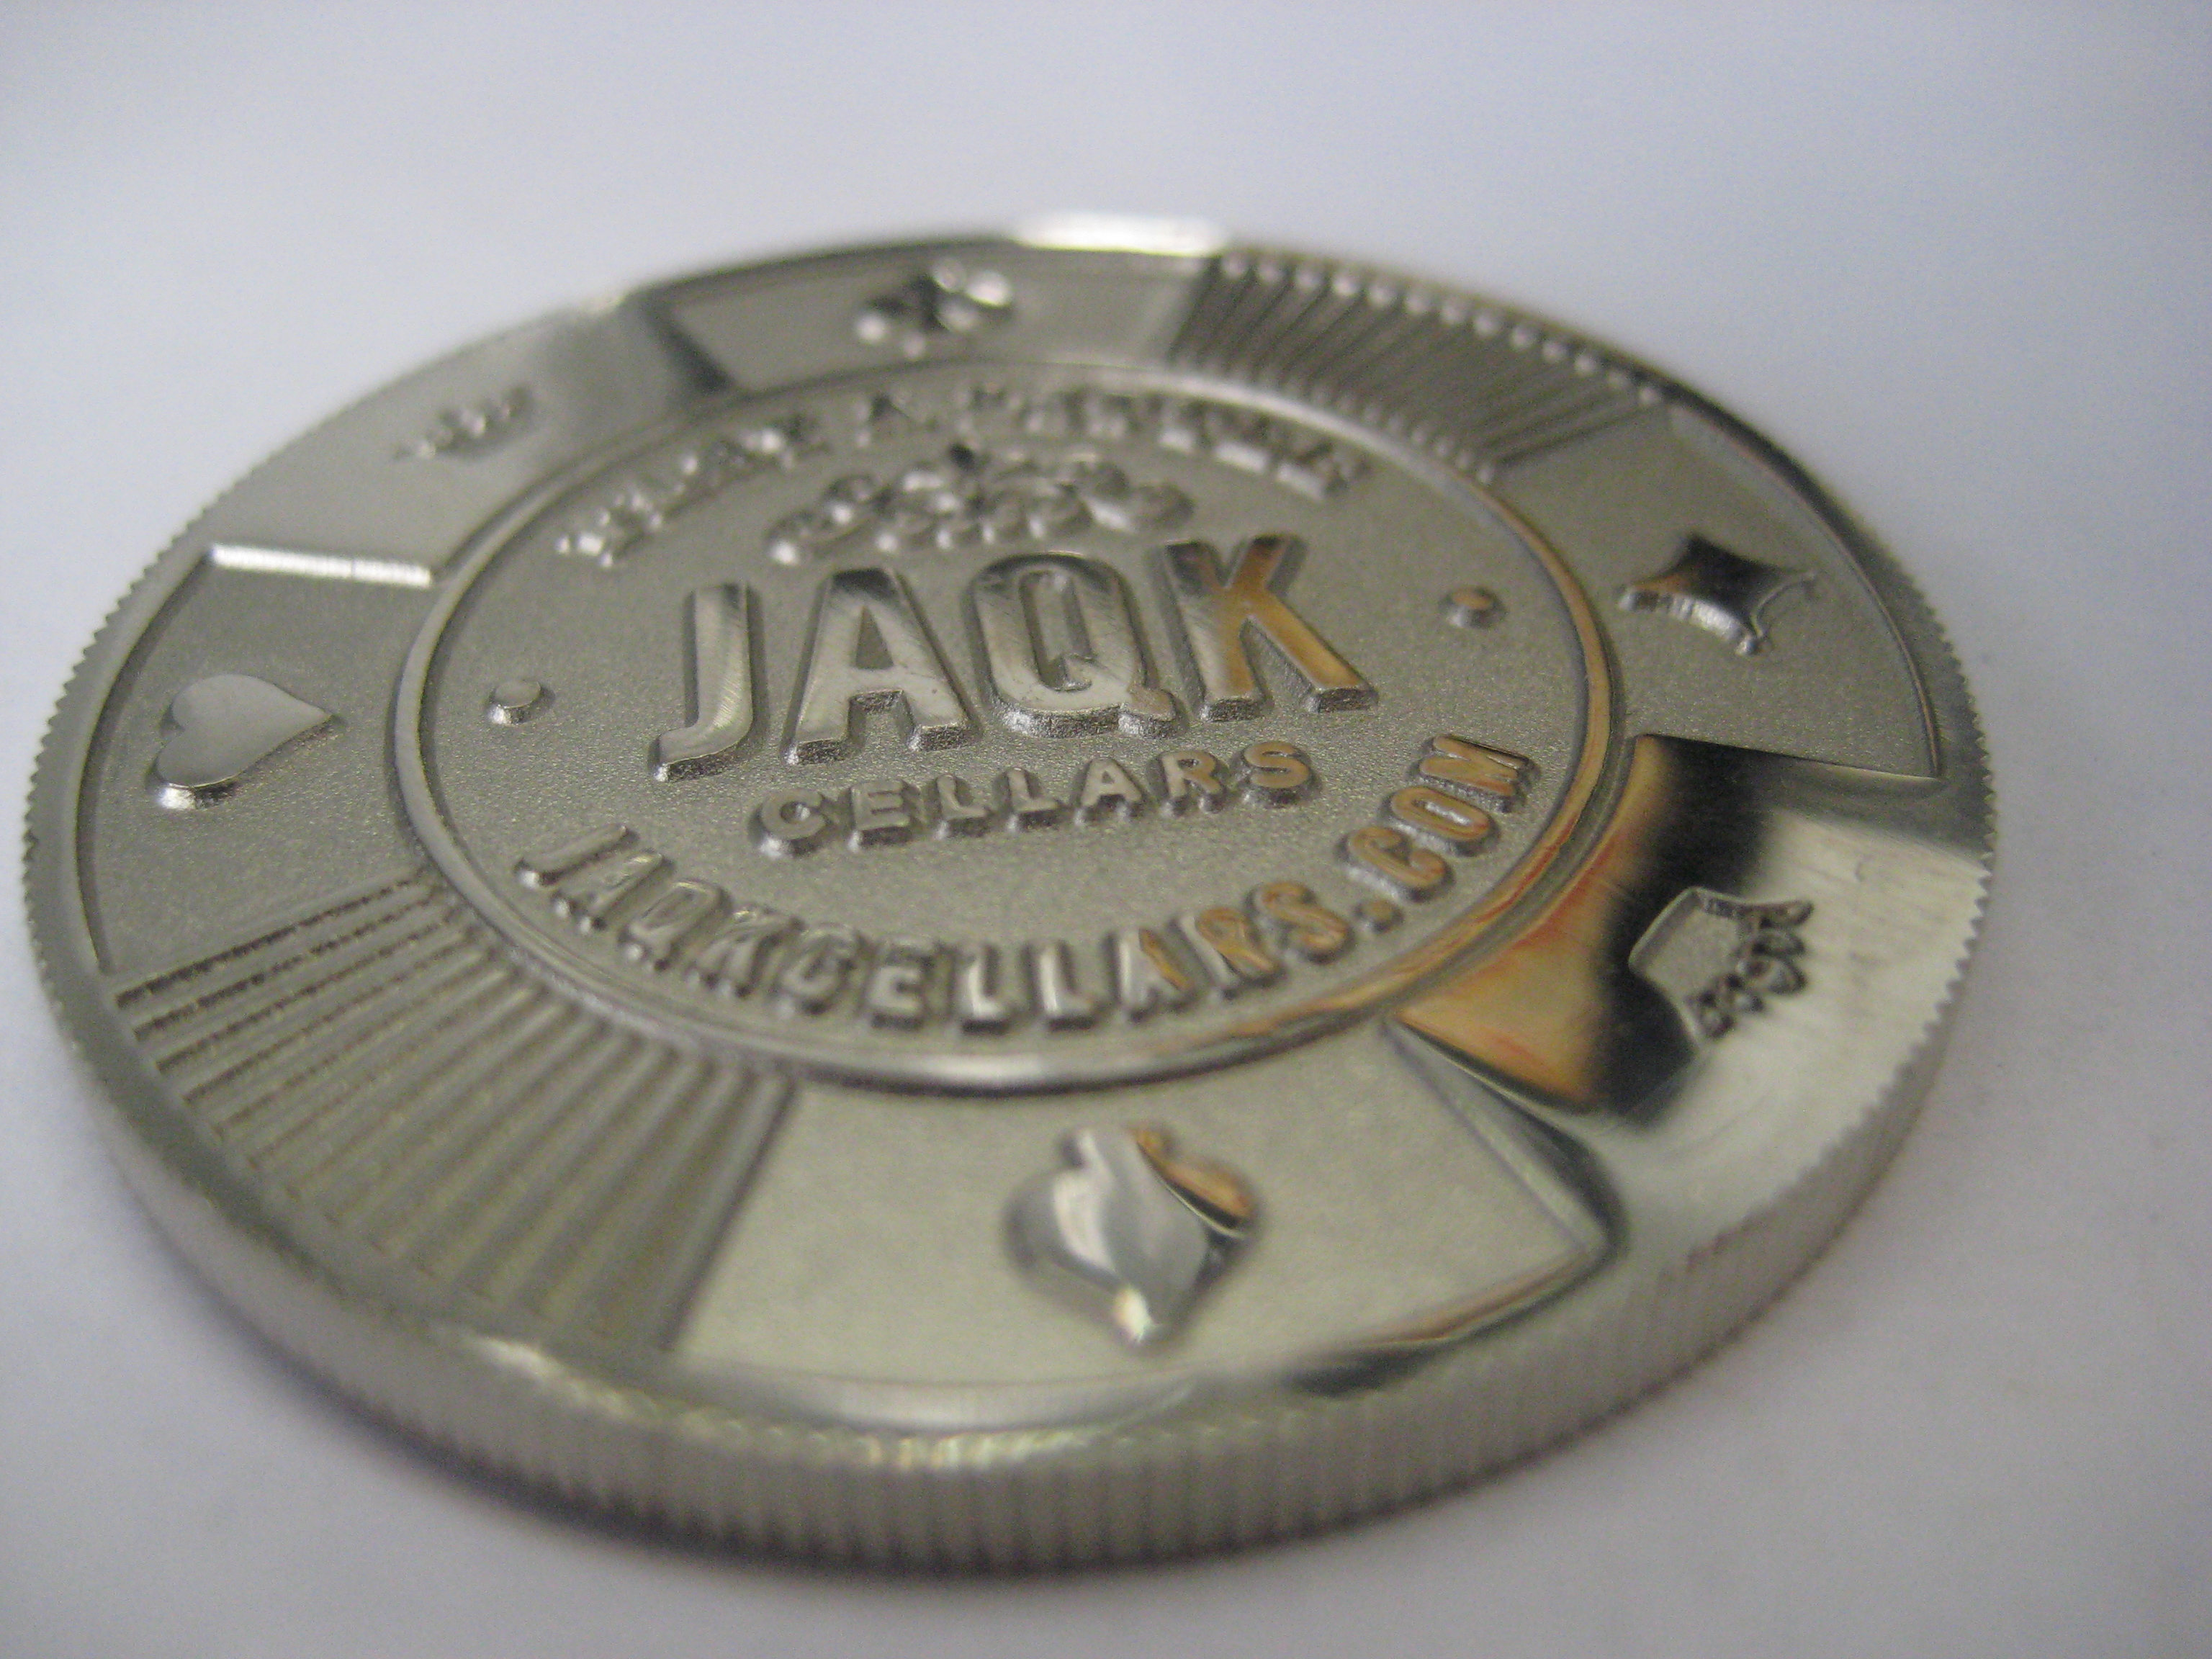 Instead of having a regular business card, founder Joel Templin gives out poker chips.